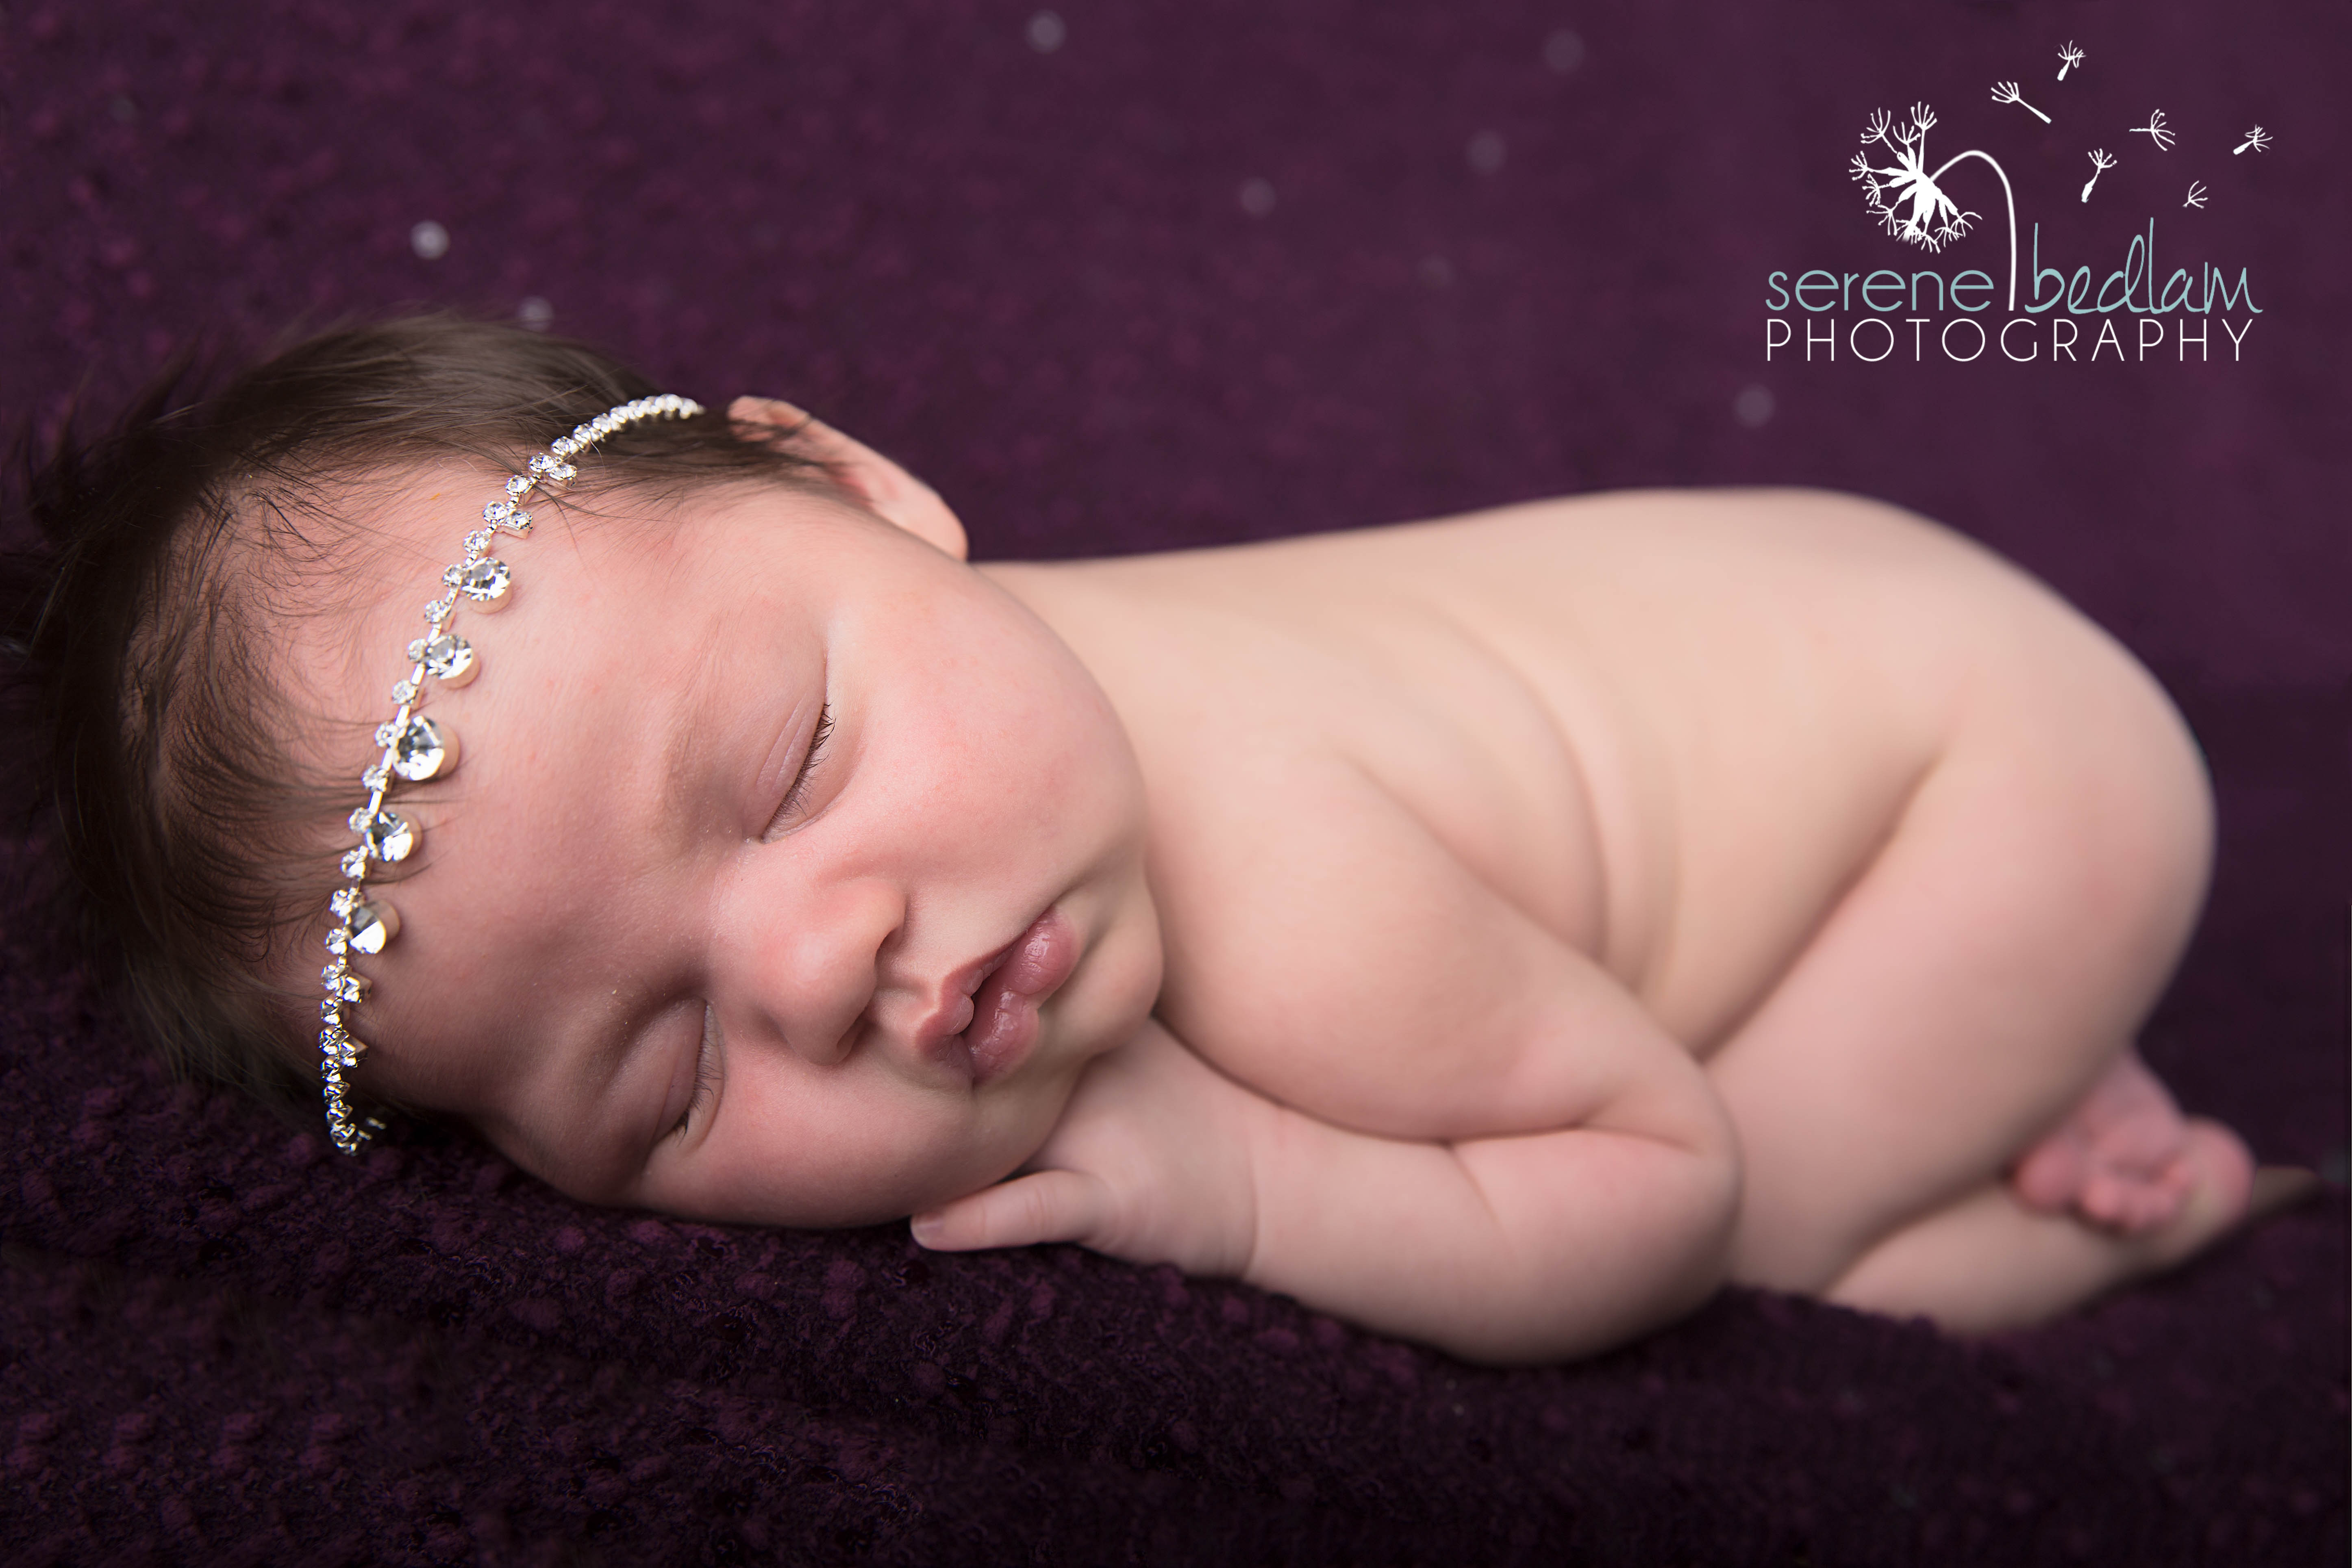 Serene Bedlam Photography Newborn Photography with Siblings